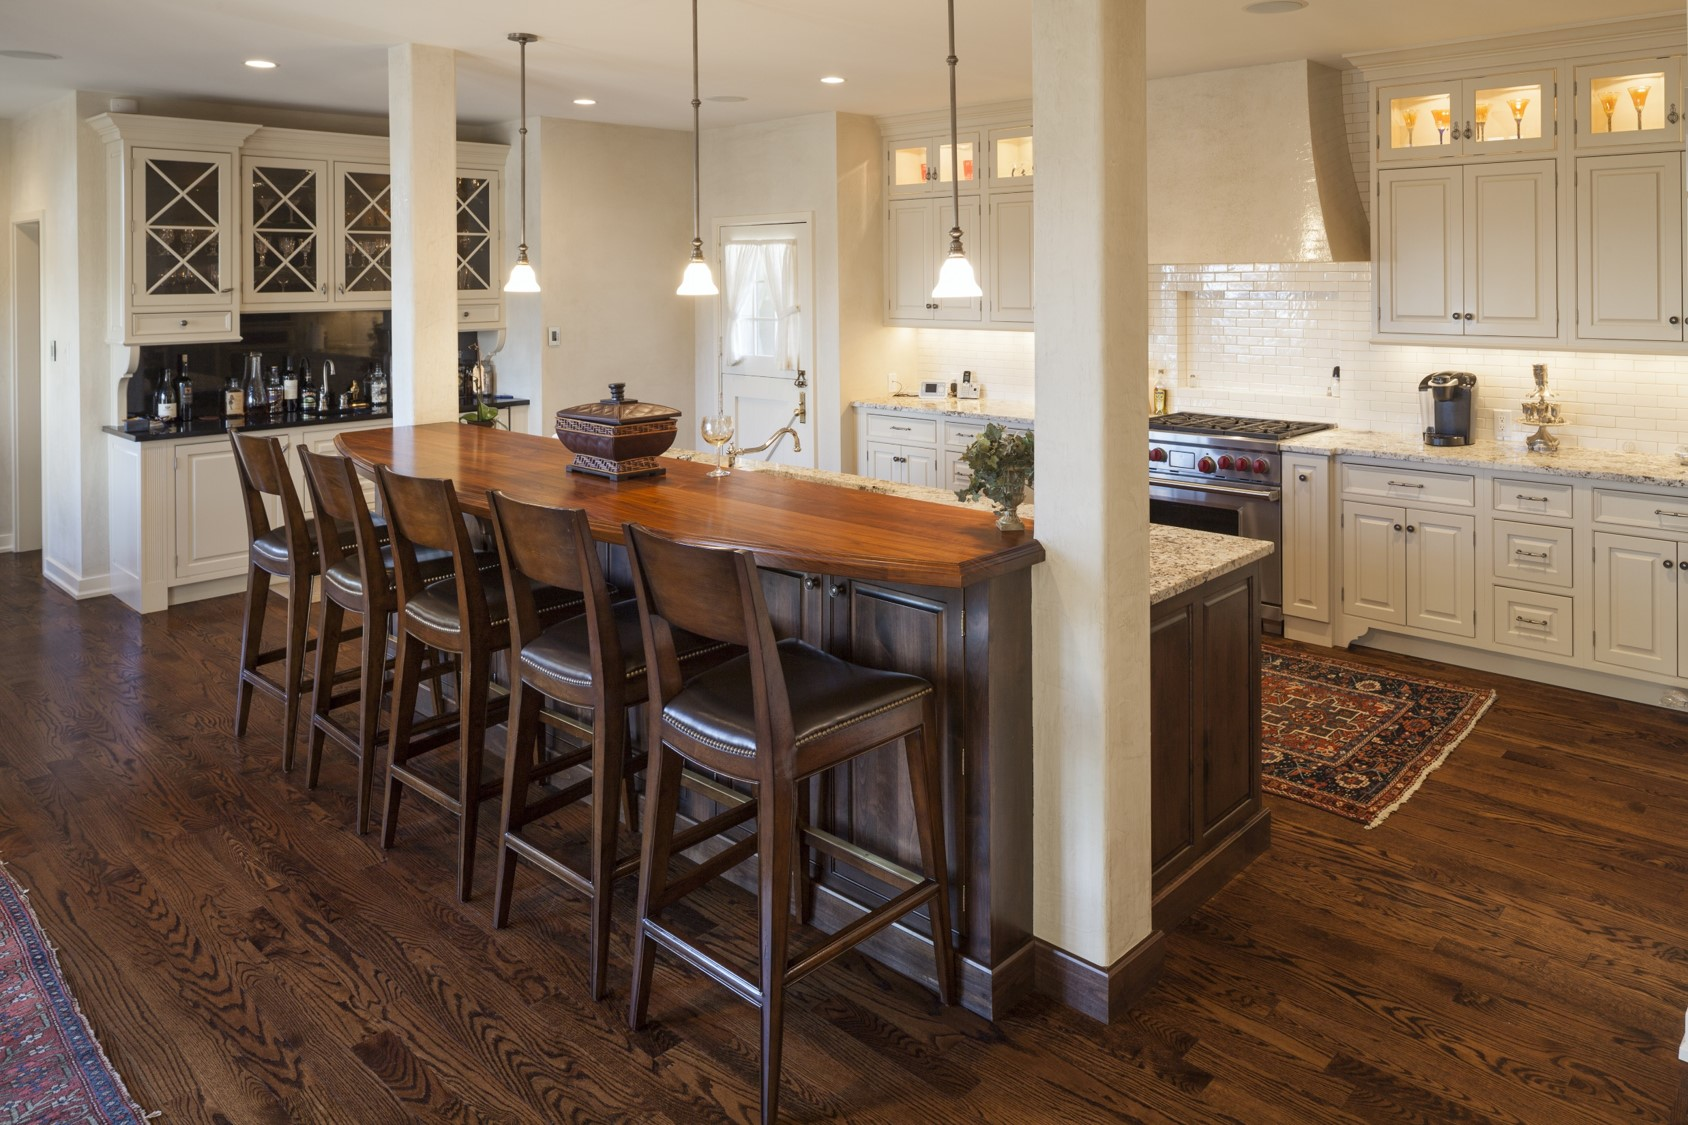 This client asked for a place where she could orchestrate breakfast for all five of her children.